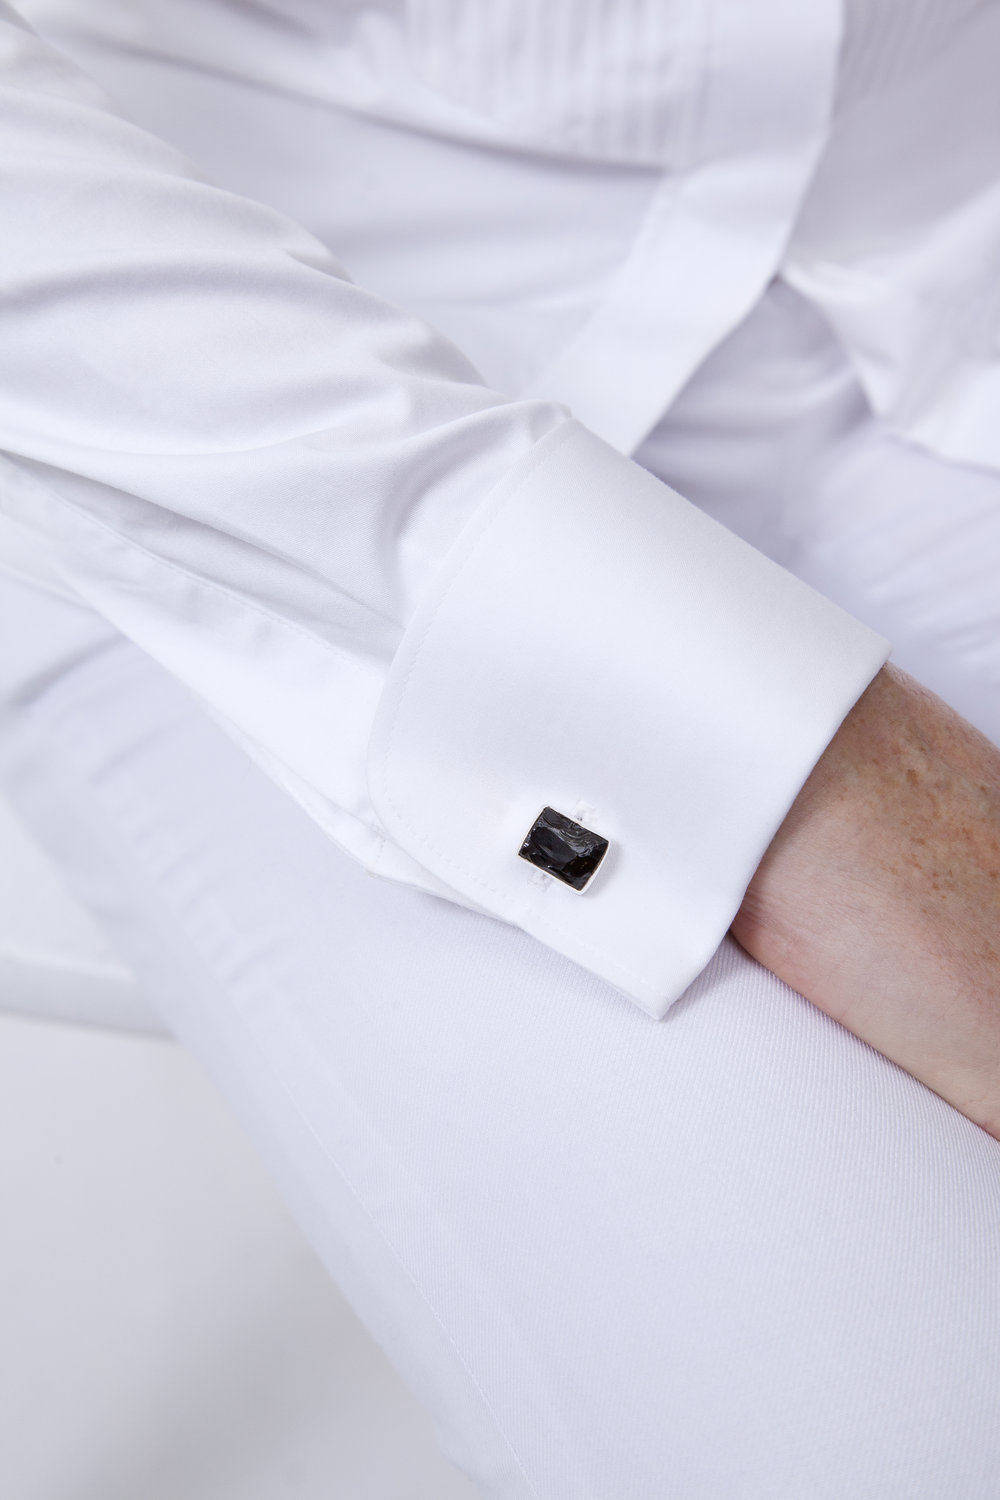 Bridal suit cufflink detail.jpg